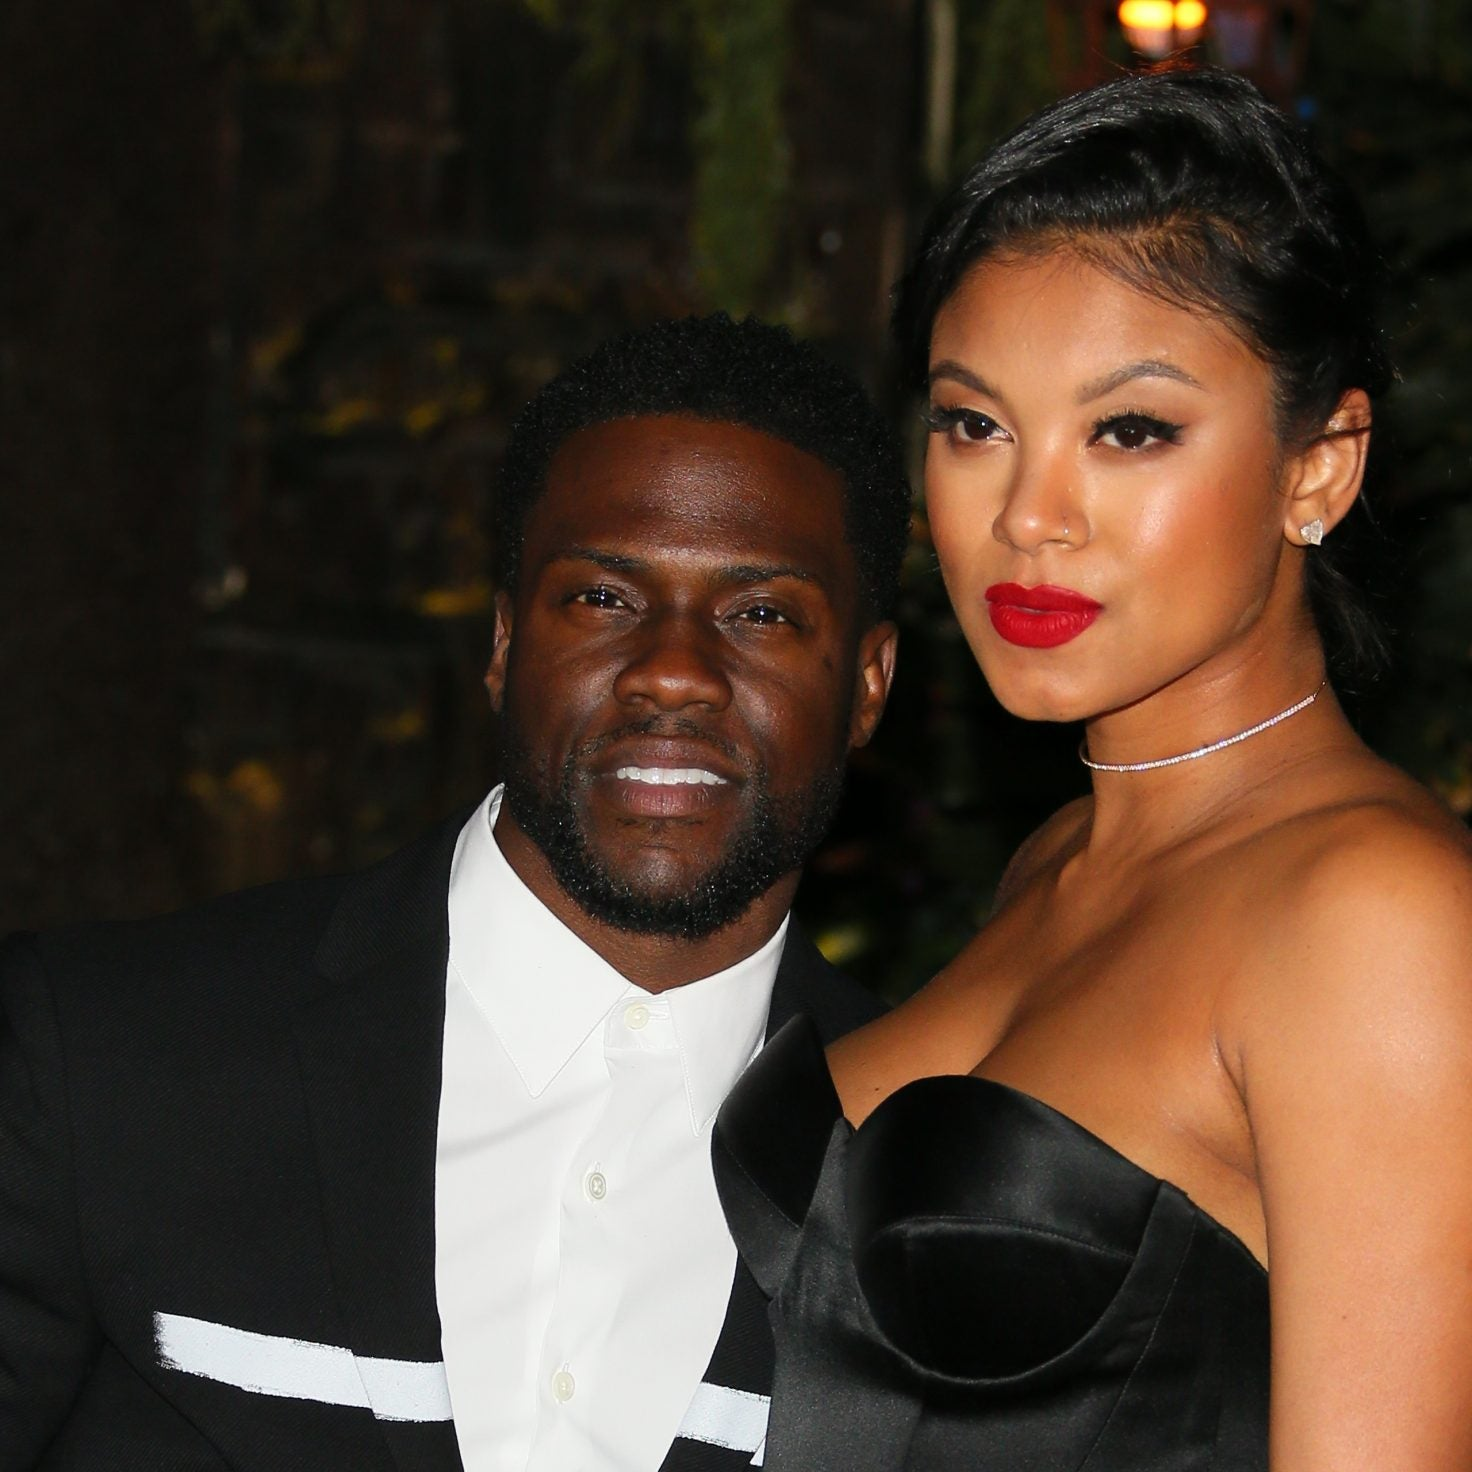 Kevin Hart's Wife Eniko Found About His Cheating In An Instagram DM